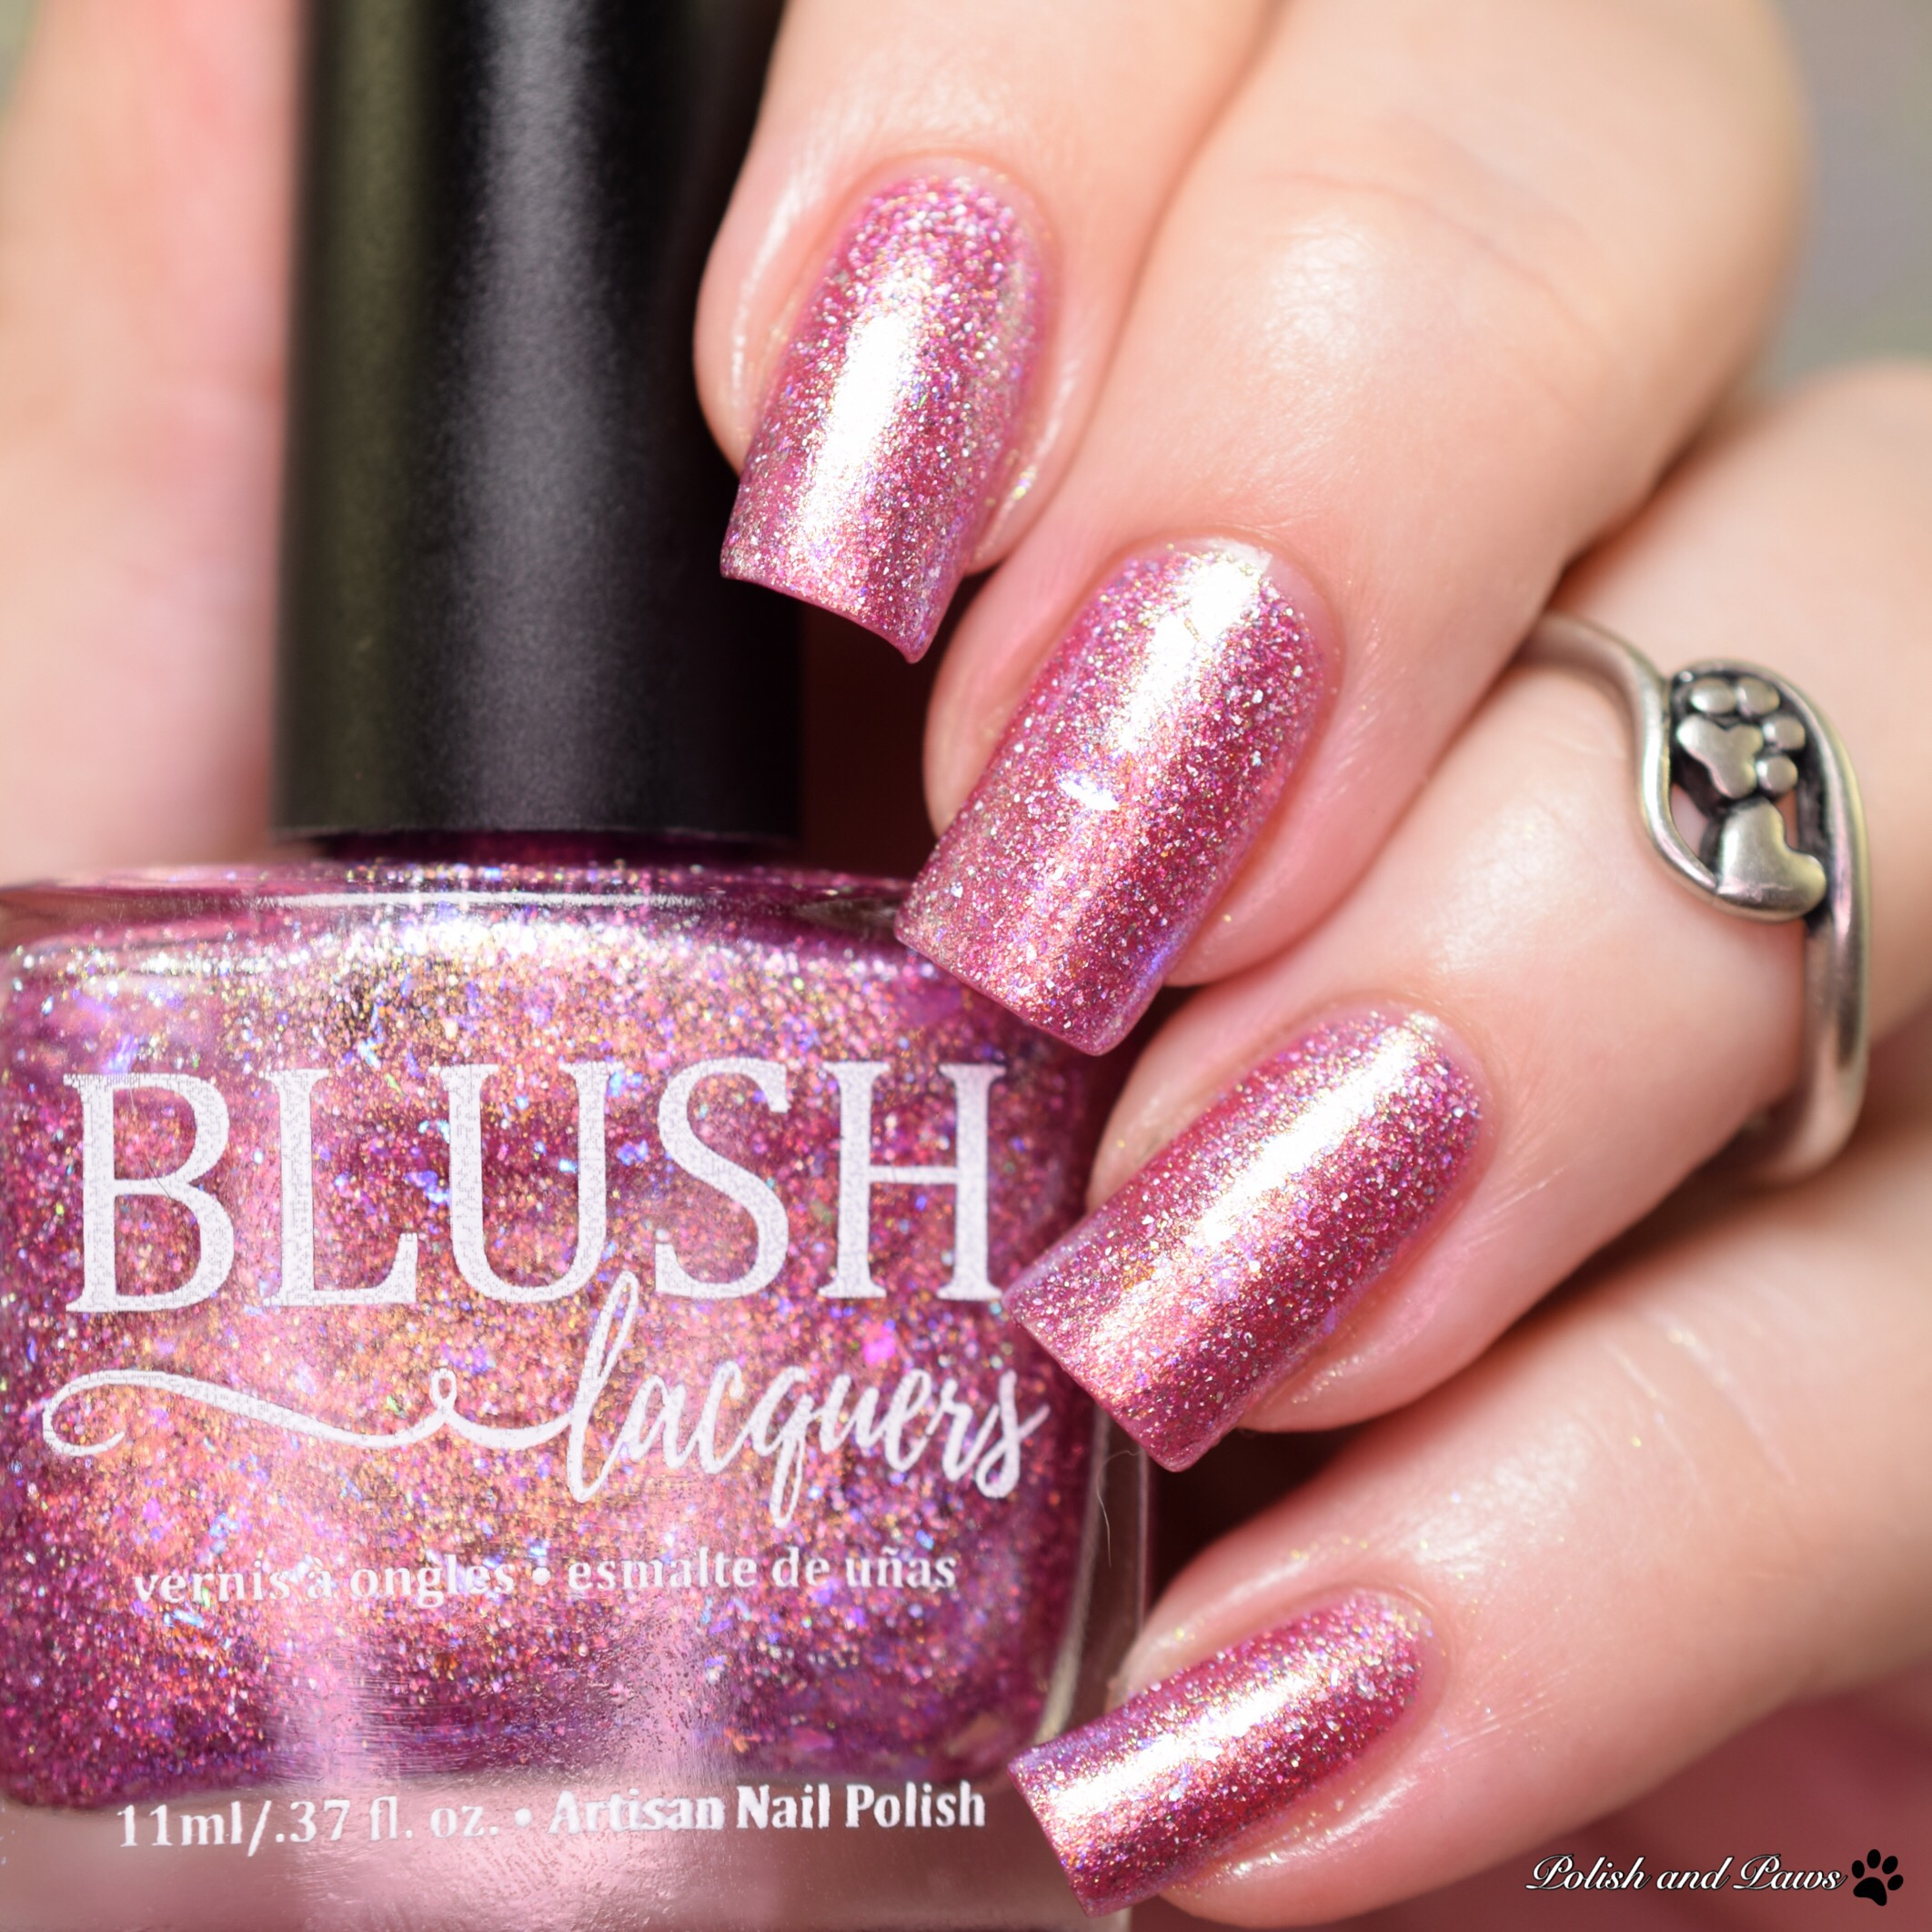 Blush Lacquers Raspberry Sorbet